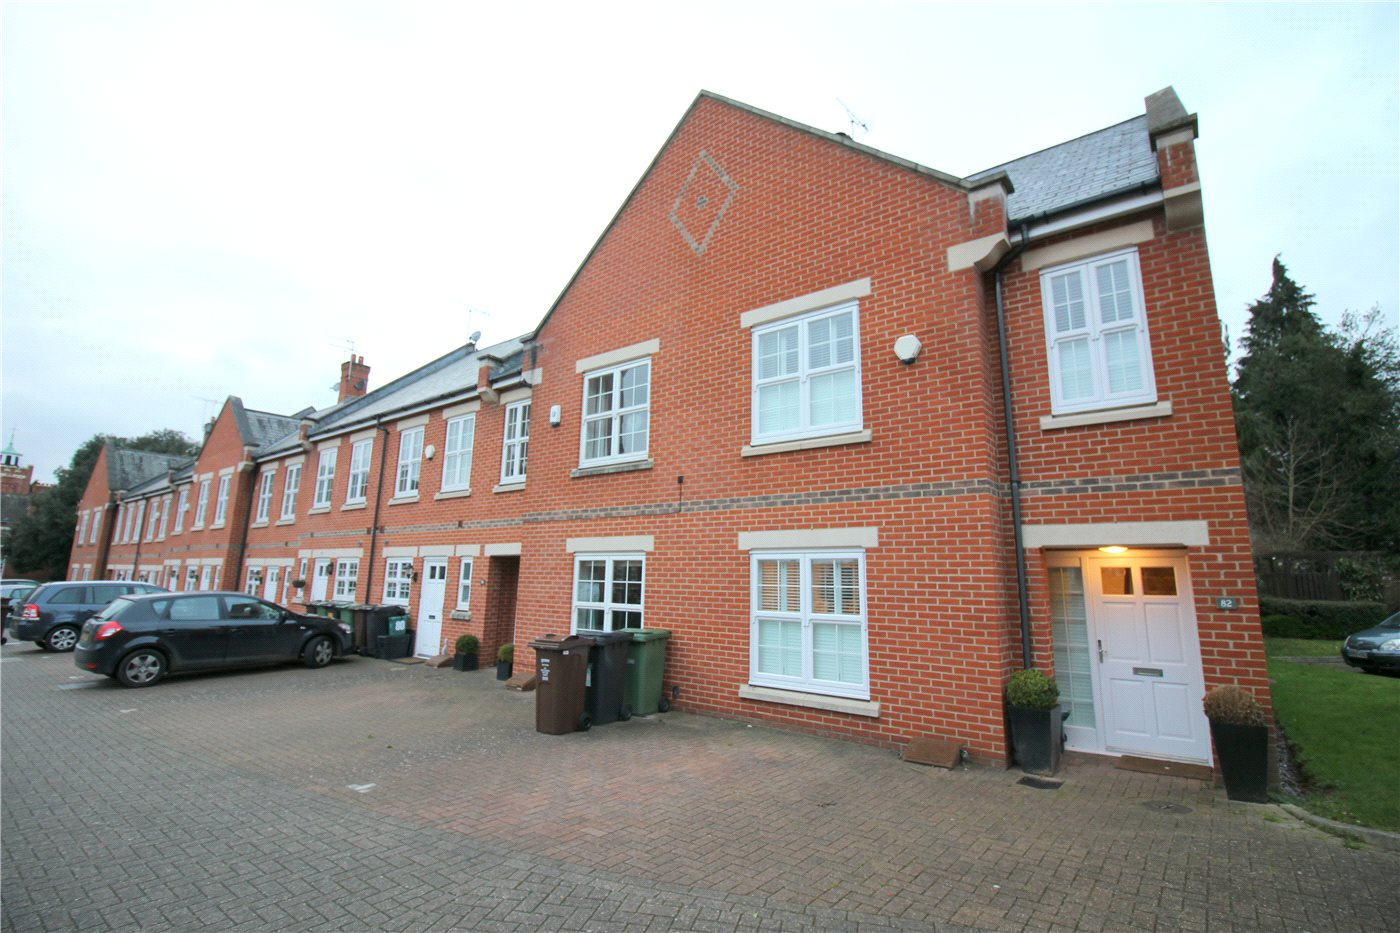 3 Bedrooms End Of Terrace House for sale in Beningfield Drive, London Colney, St. Albans, Hertfordshire, AL2